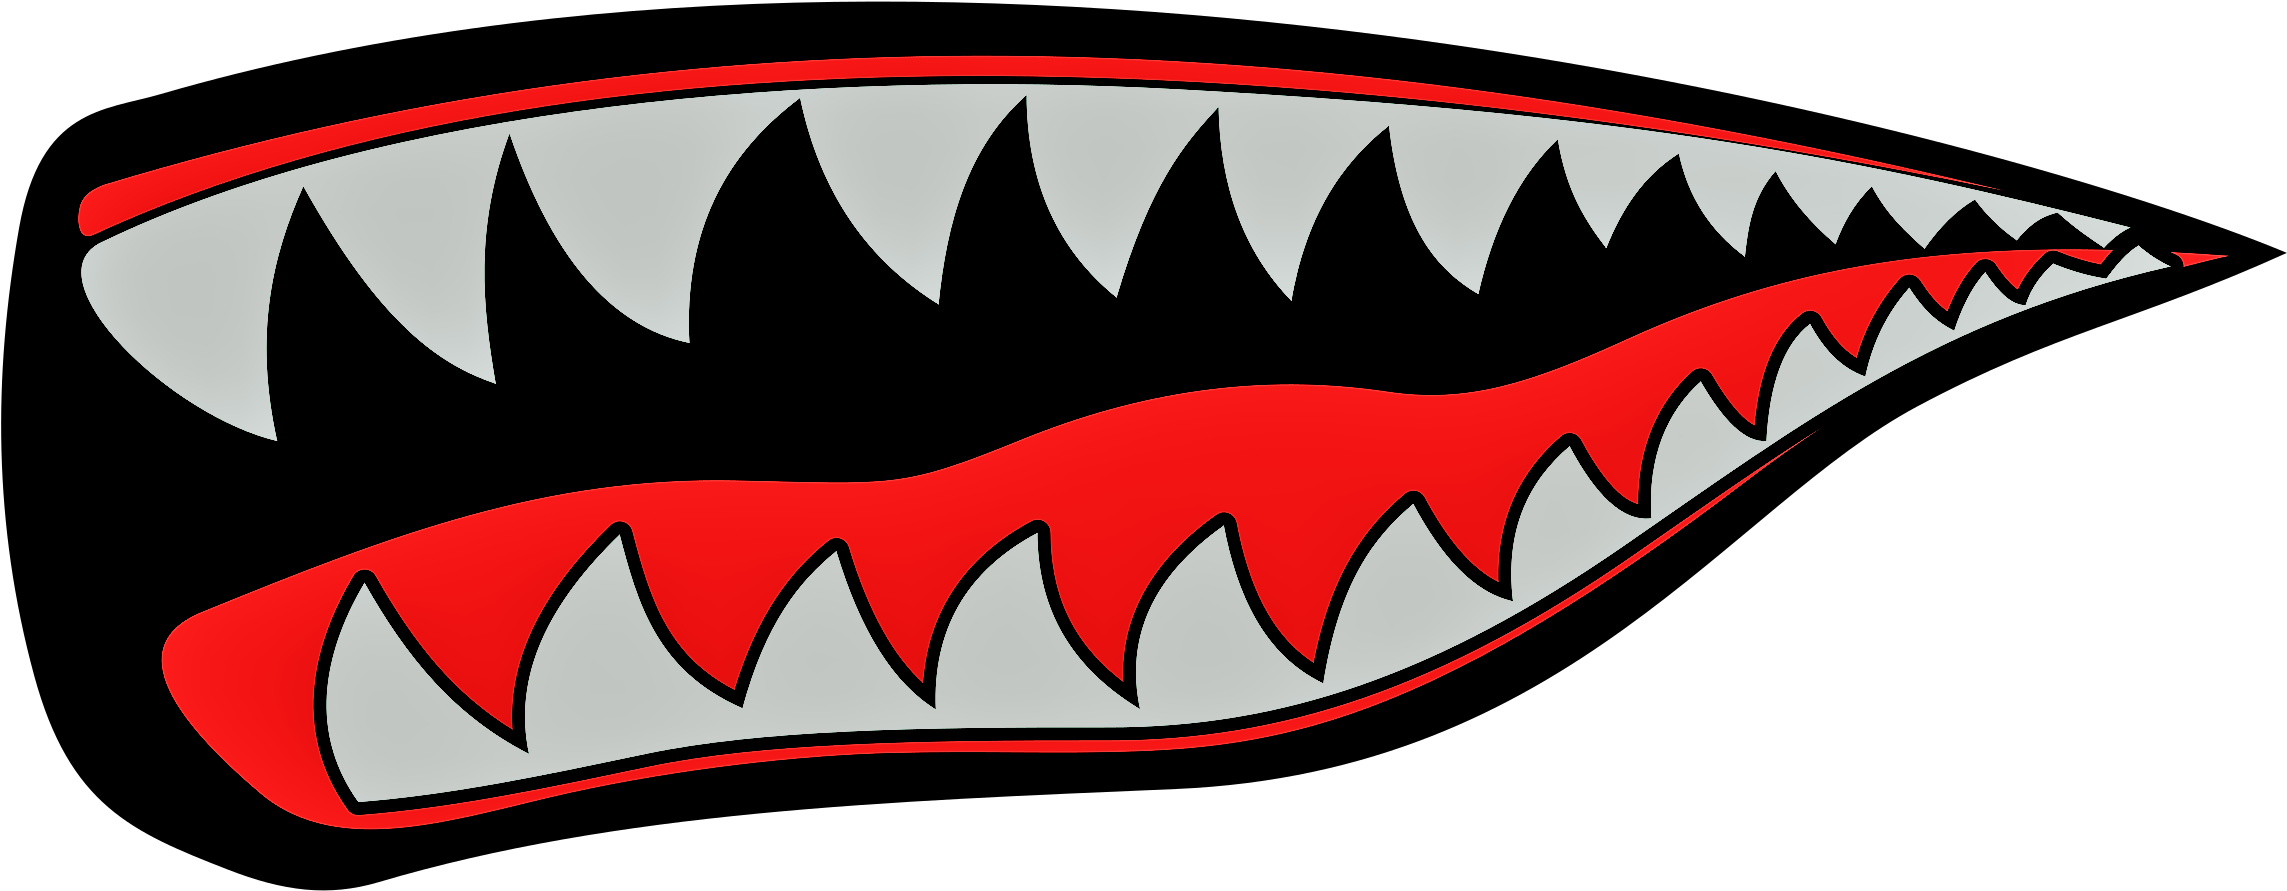 Shark Mouth Free Vector Clipart.